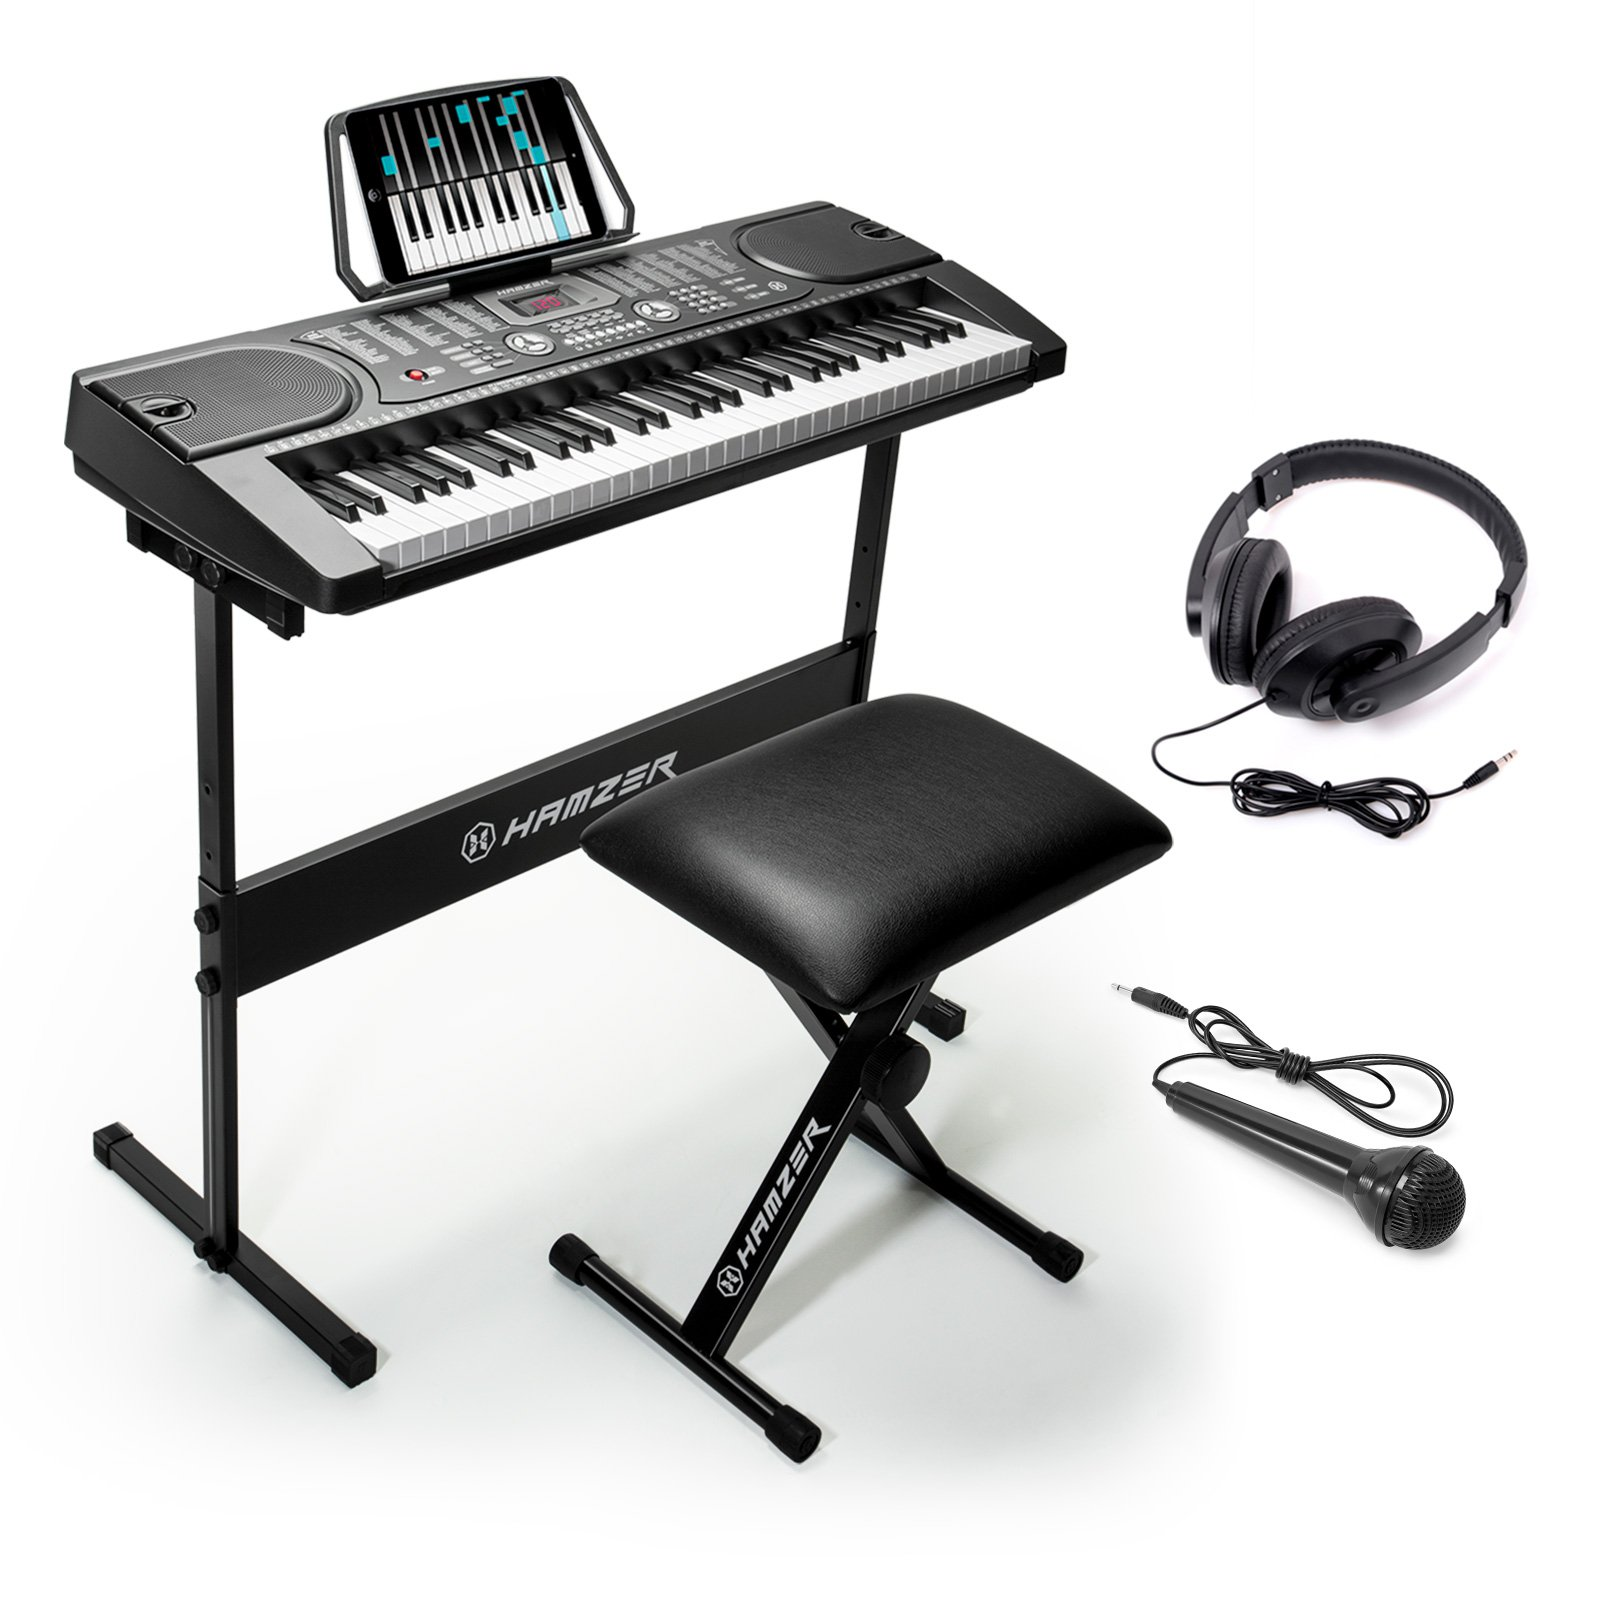 Hamzer 61-Key Digital Music Piano Keyboard – Portable Electronic Musical Instrument - with Stand, Stool, Headphones & Microphone by Hamzer